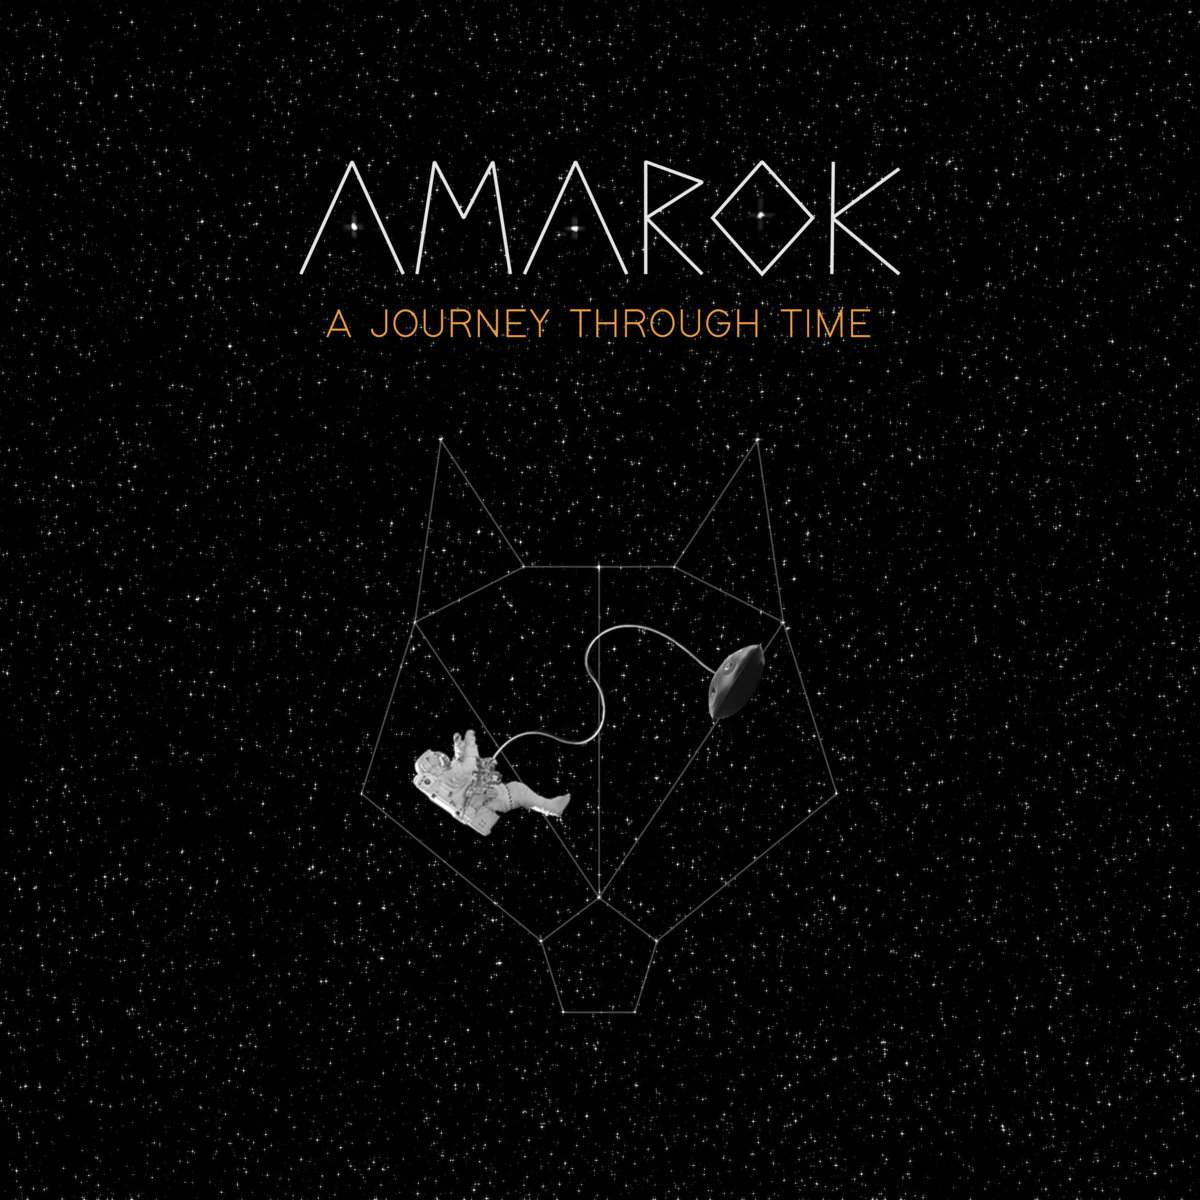 A Journey Through Time by Amarok